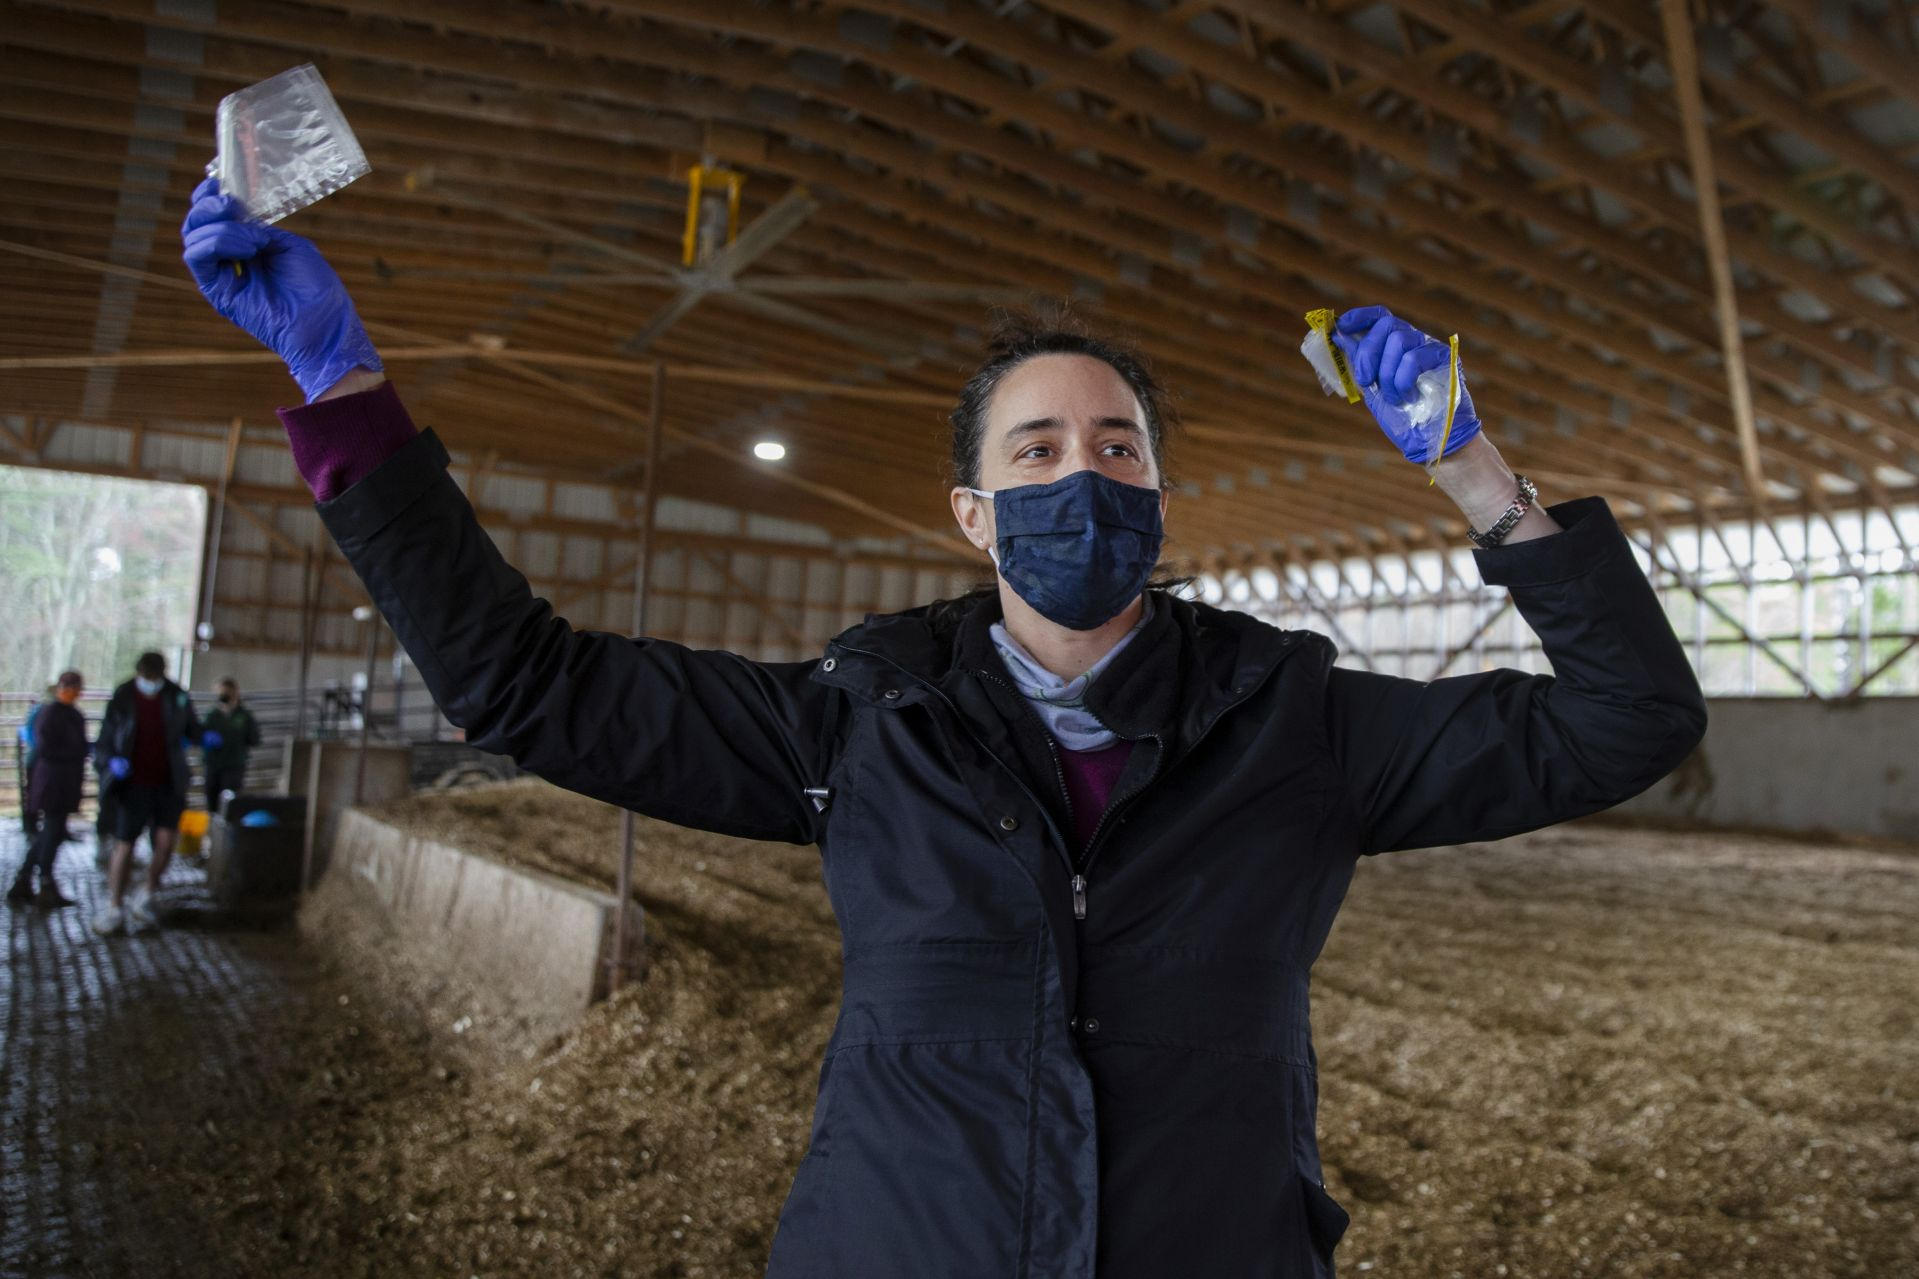 Holding sample bag), Lecturer in Biology Louise Brogan gestures to students at one end of the barn. (Phyllis Graber Jensen/Bates College)